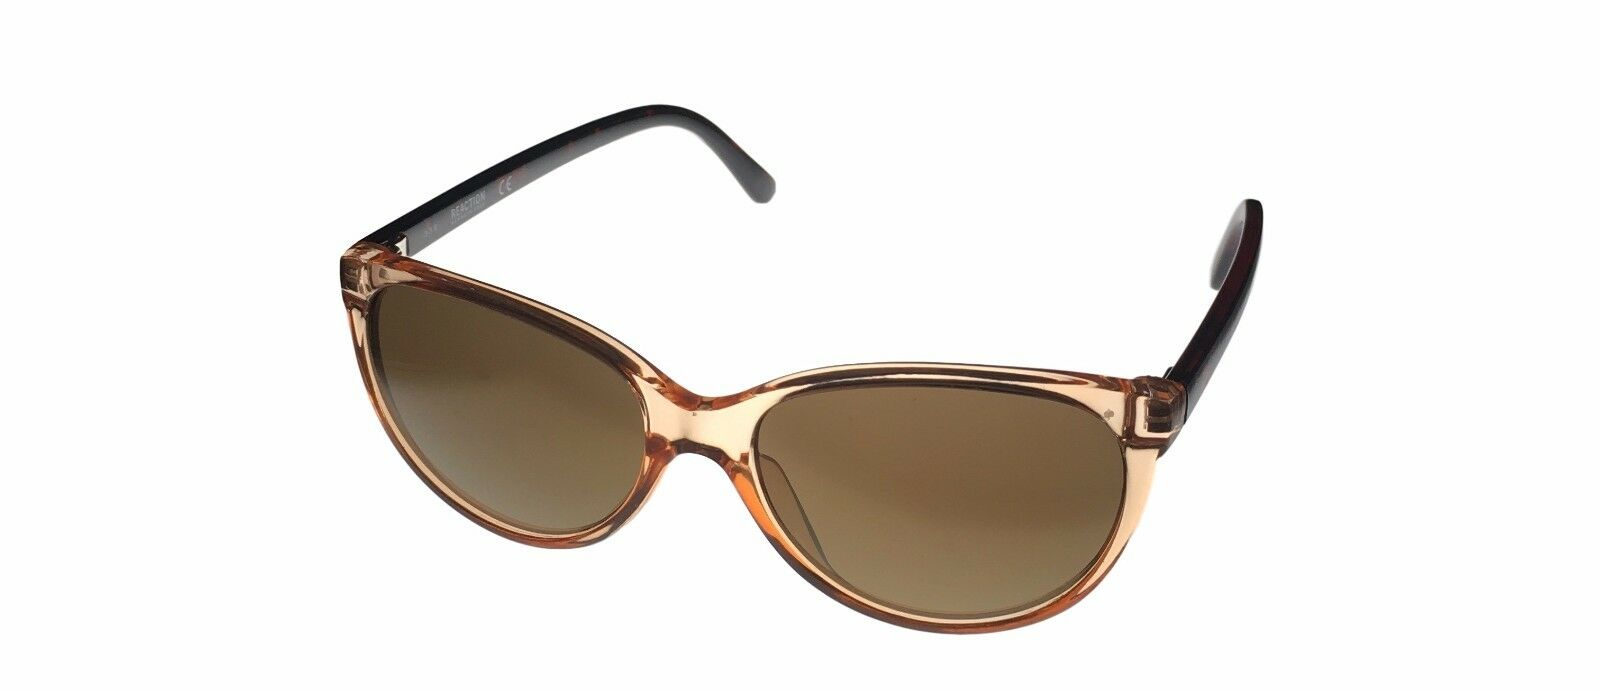 Kenneth Cole Reaction Sunglass Round Crystal Champagne Plastic Mirror KC1271 45G